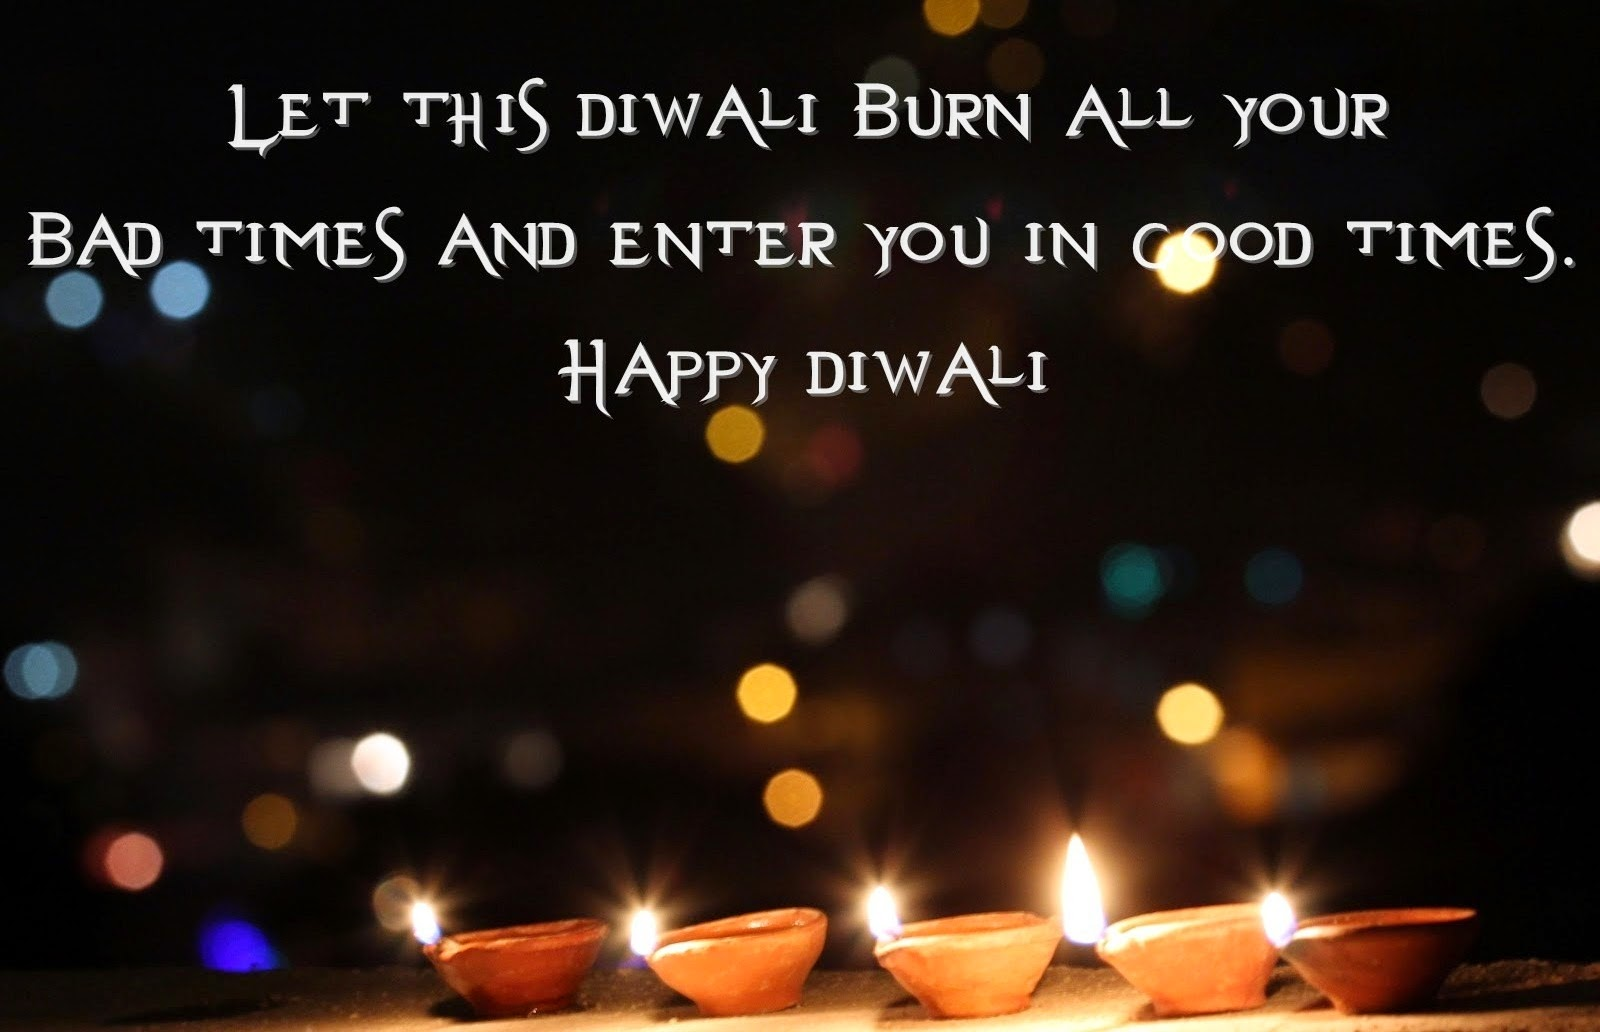 Happy diwali wishes 2018 messages and quotes happy diwali quotes happy diwali wishes 2018 messages and quotes happy diwali quotes 2018 m4hsunfo